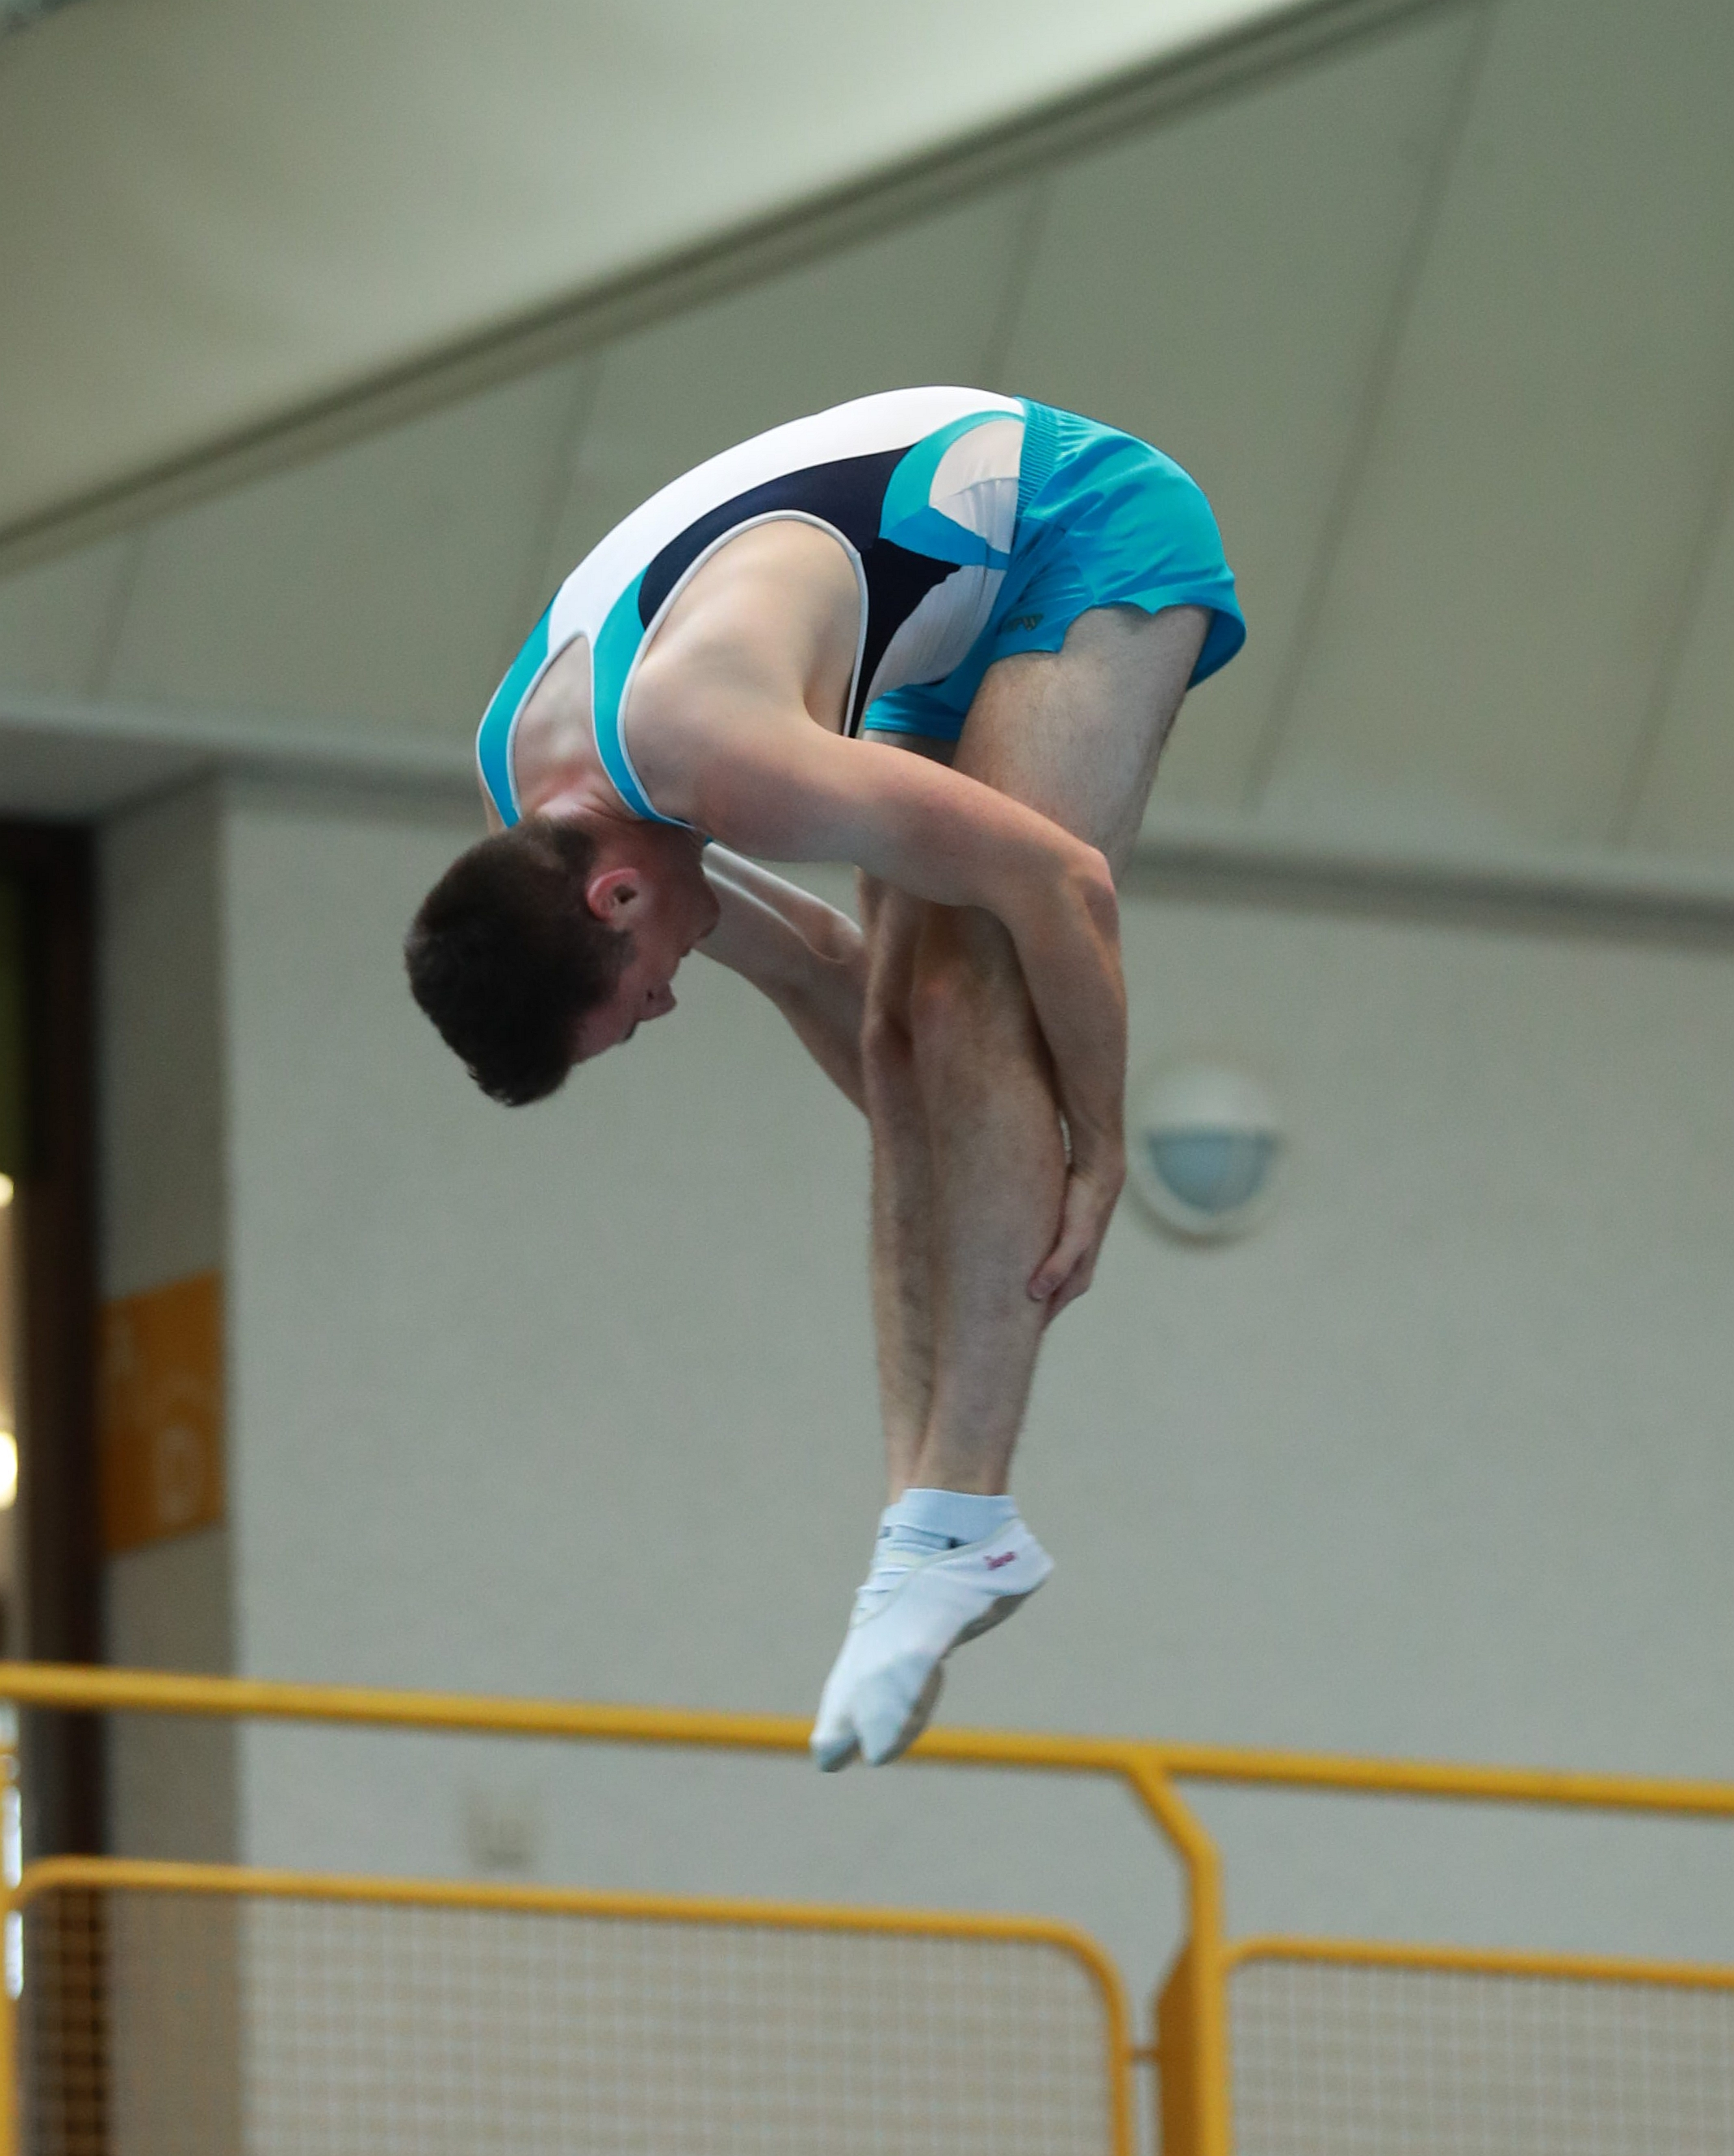 Internationalen Filder Pokal im Trampolinturnen 2018 in Ruit. Abgebildet: Moritz Best. Date 30 June 2018 Source Own work Author Martin Rulsch, Wikimedia Commons